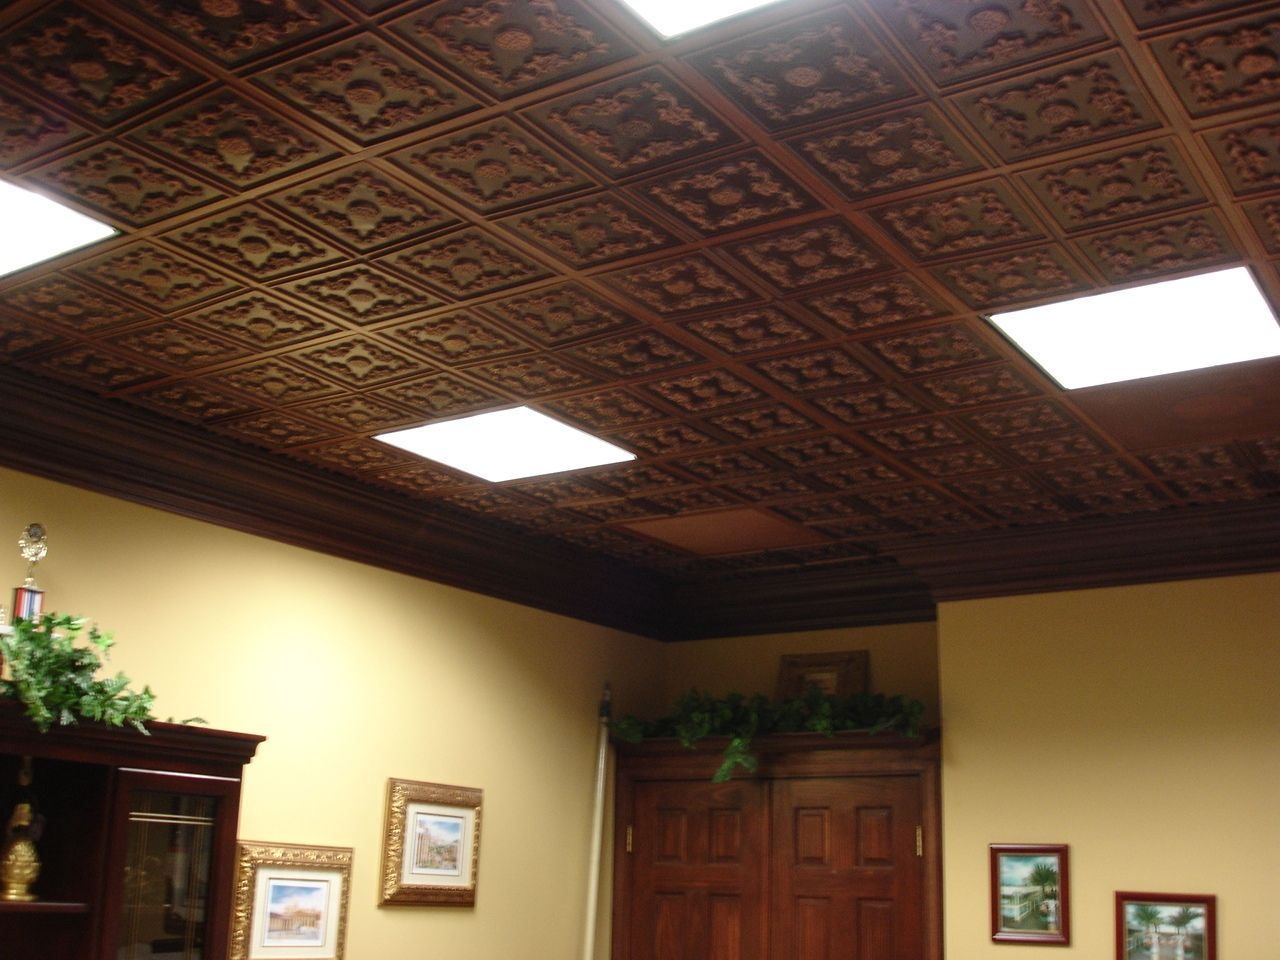 Colored ceiling tiles 24 httpcreativechairsandtables colored ceiling tiles 24 dailygadgetfo Choice Image